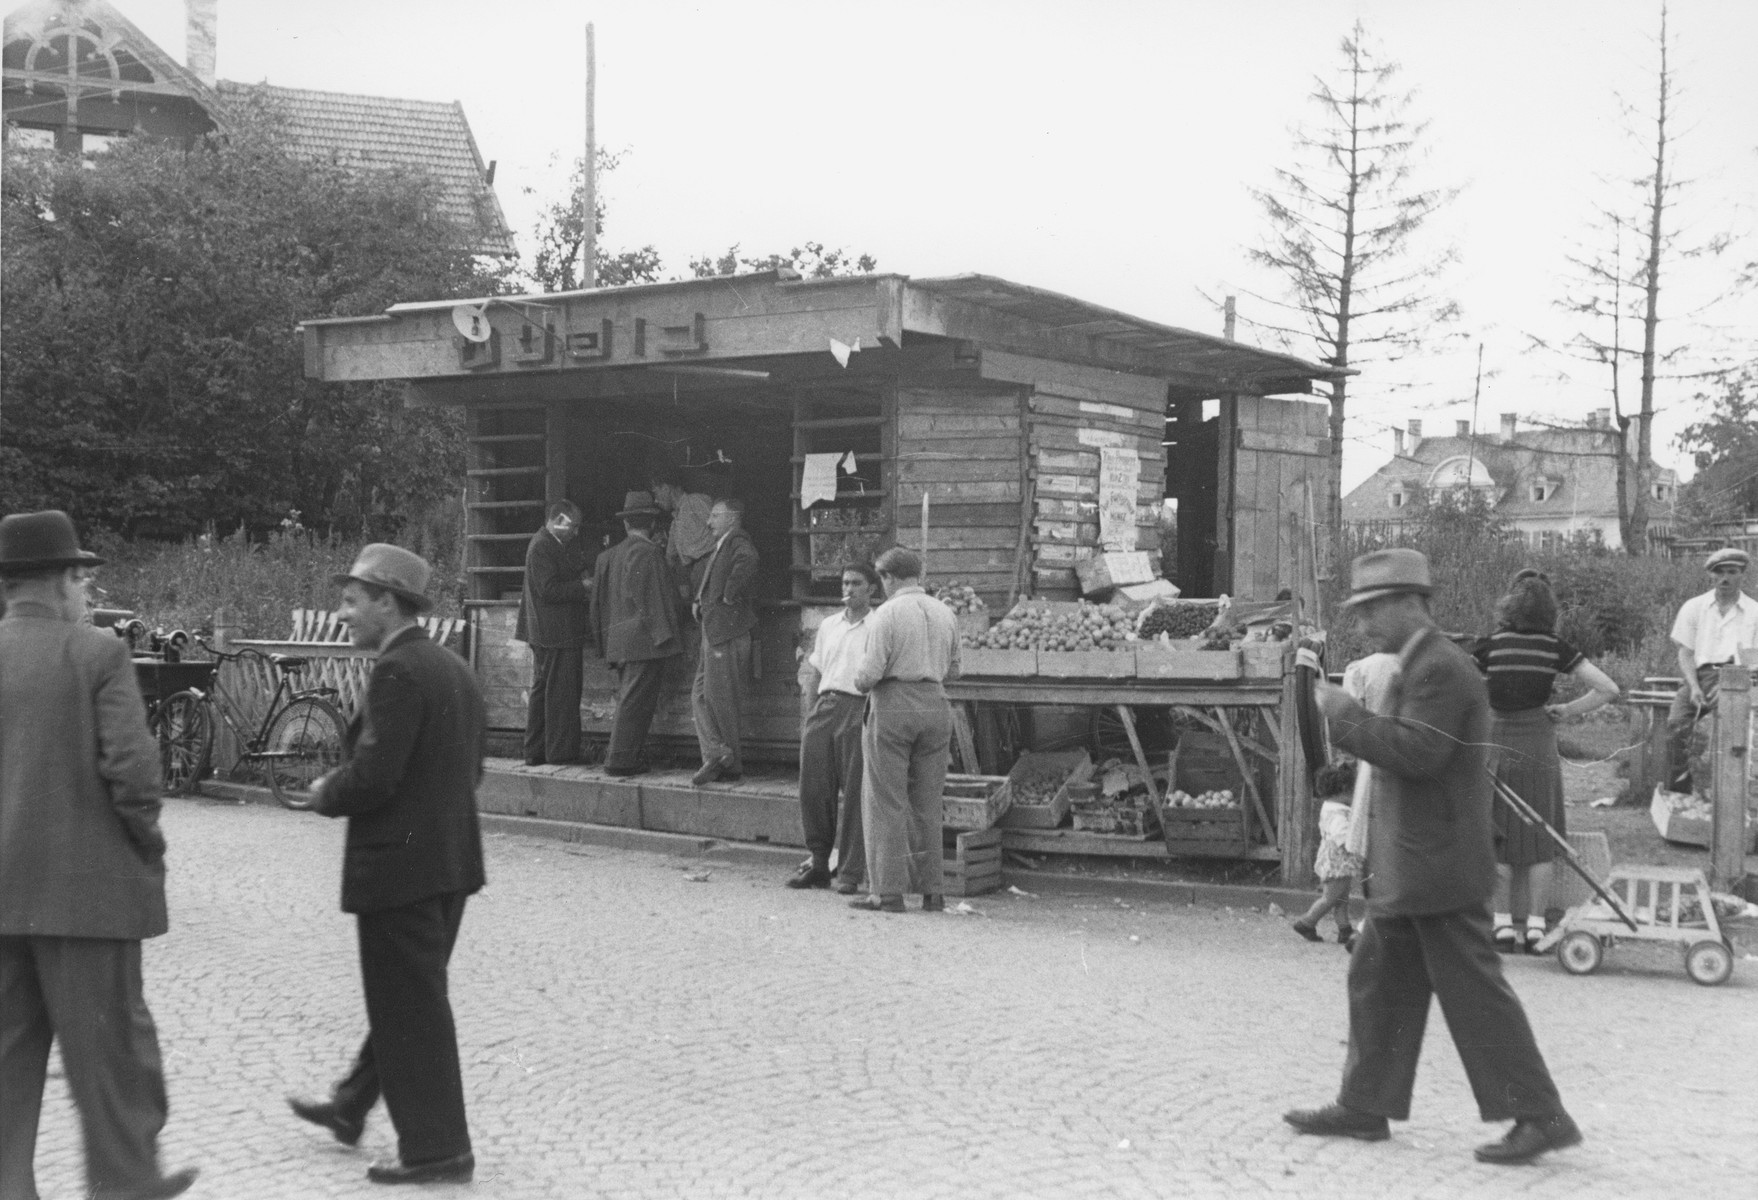 """Jewish DPs patronize a kosher food stand in the Warner-Kaserne displaced persons transit camp in Munich.  The Hebrew sign above the food stand reads """"Buffet."""""""